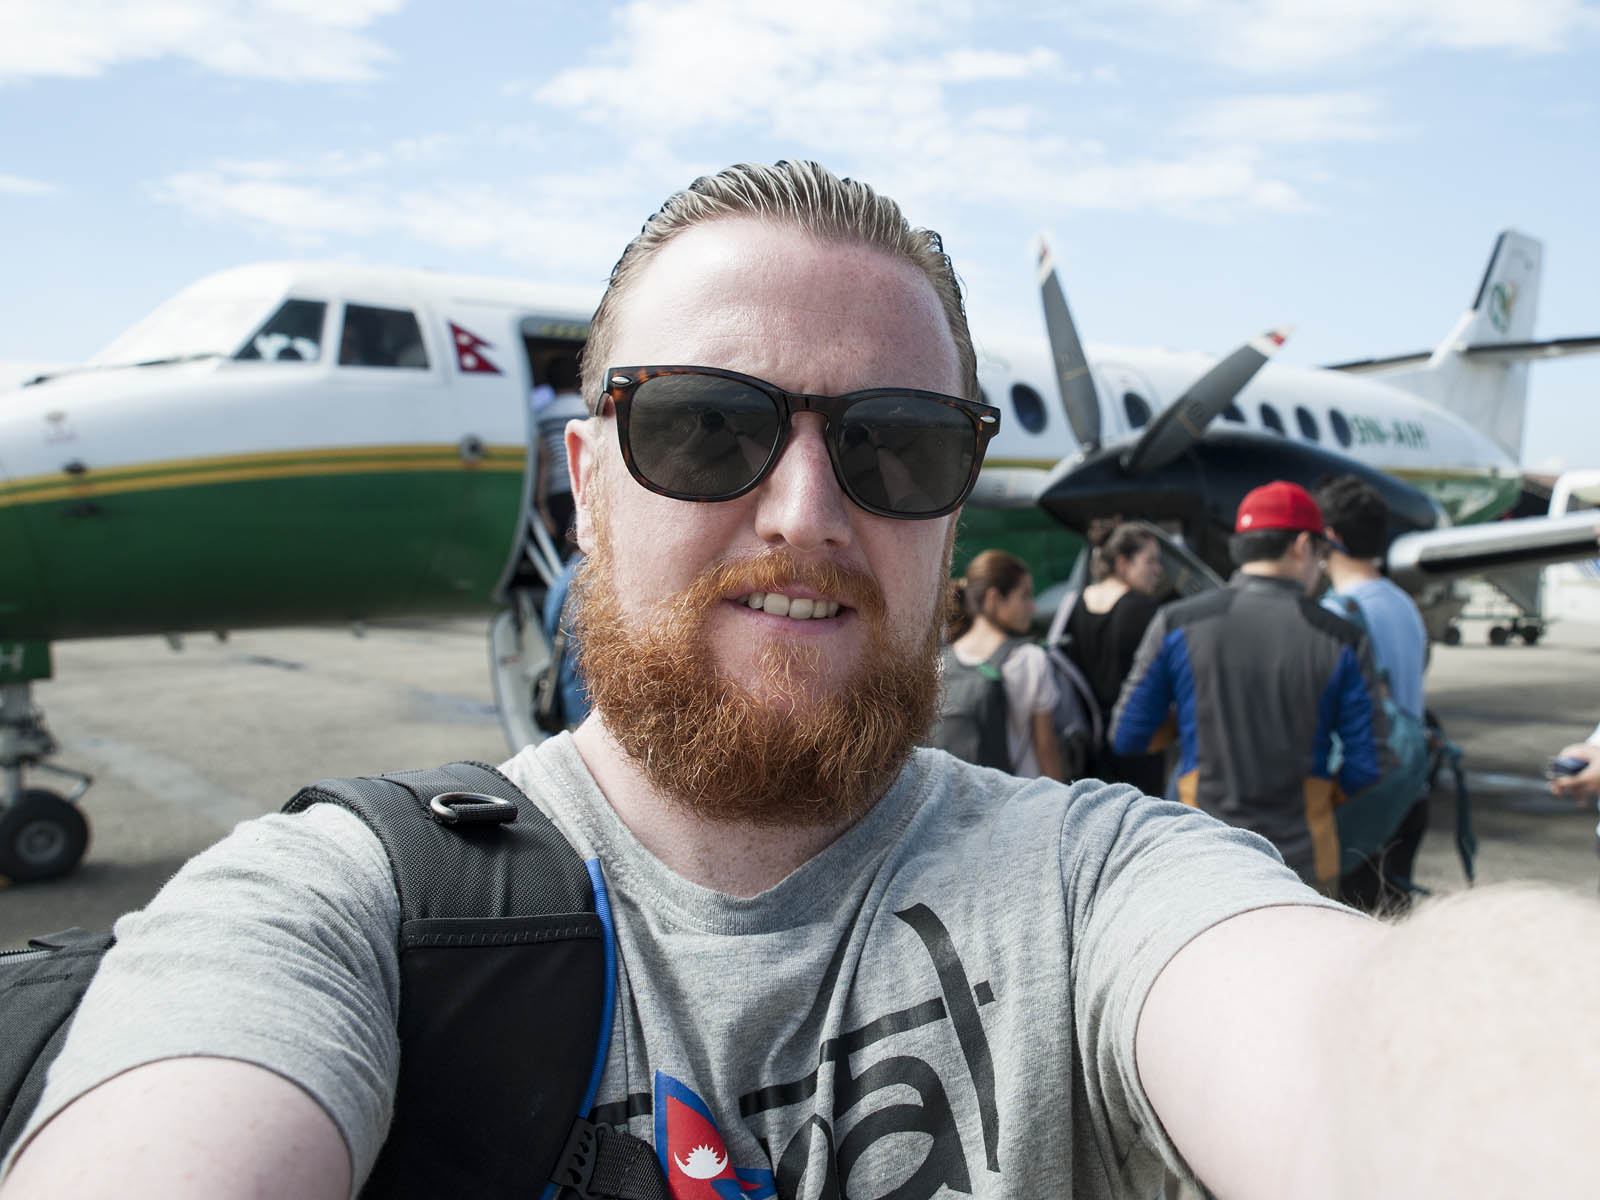 All aboard! Free time at the weekend led us to getting the plane to Pokhara for some outdoor fun!